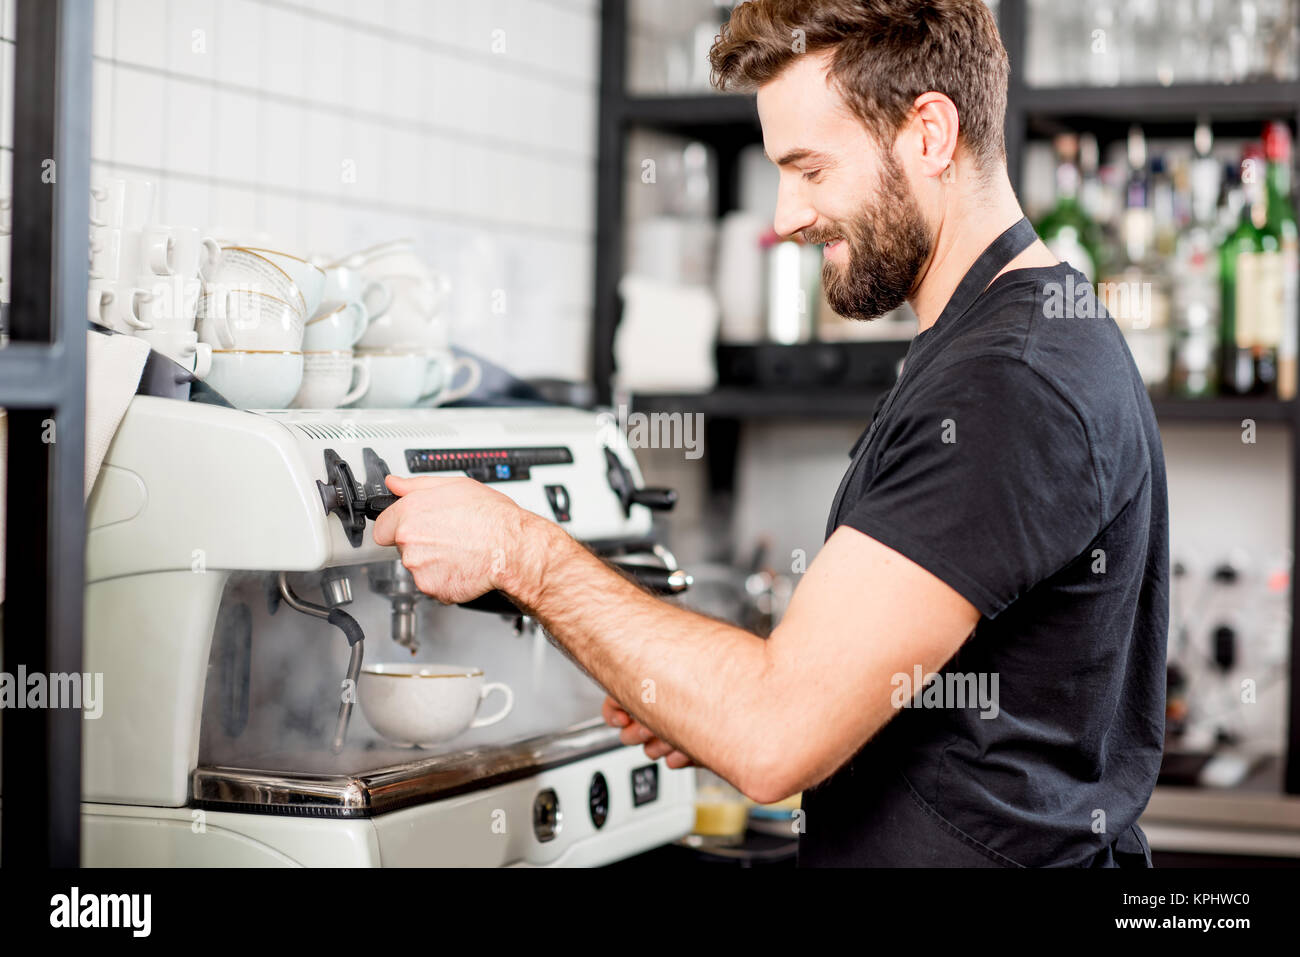 Barista making coffee - Stock Image